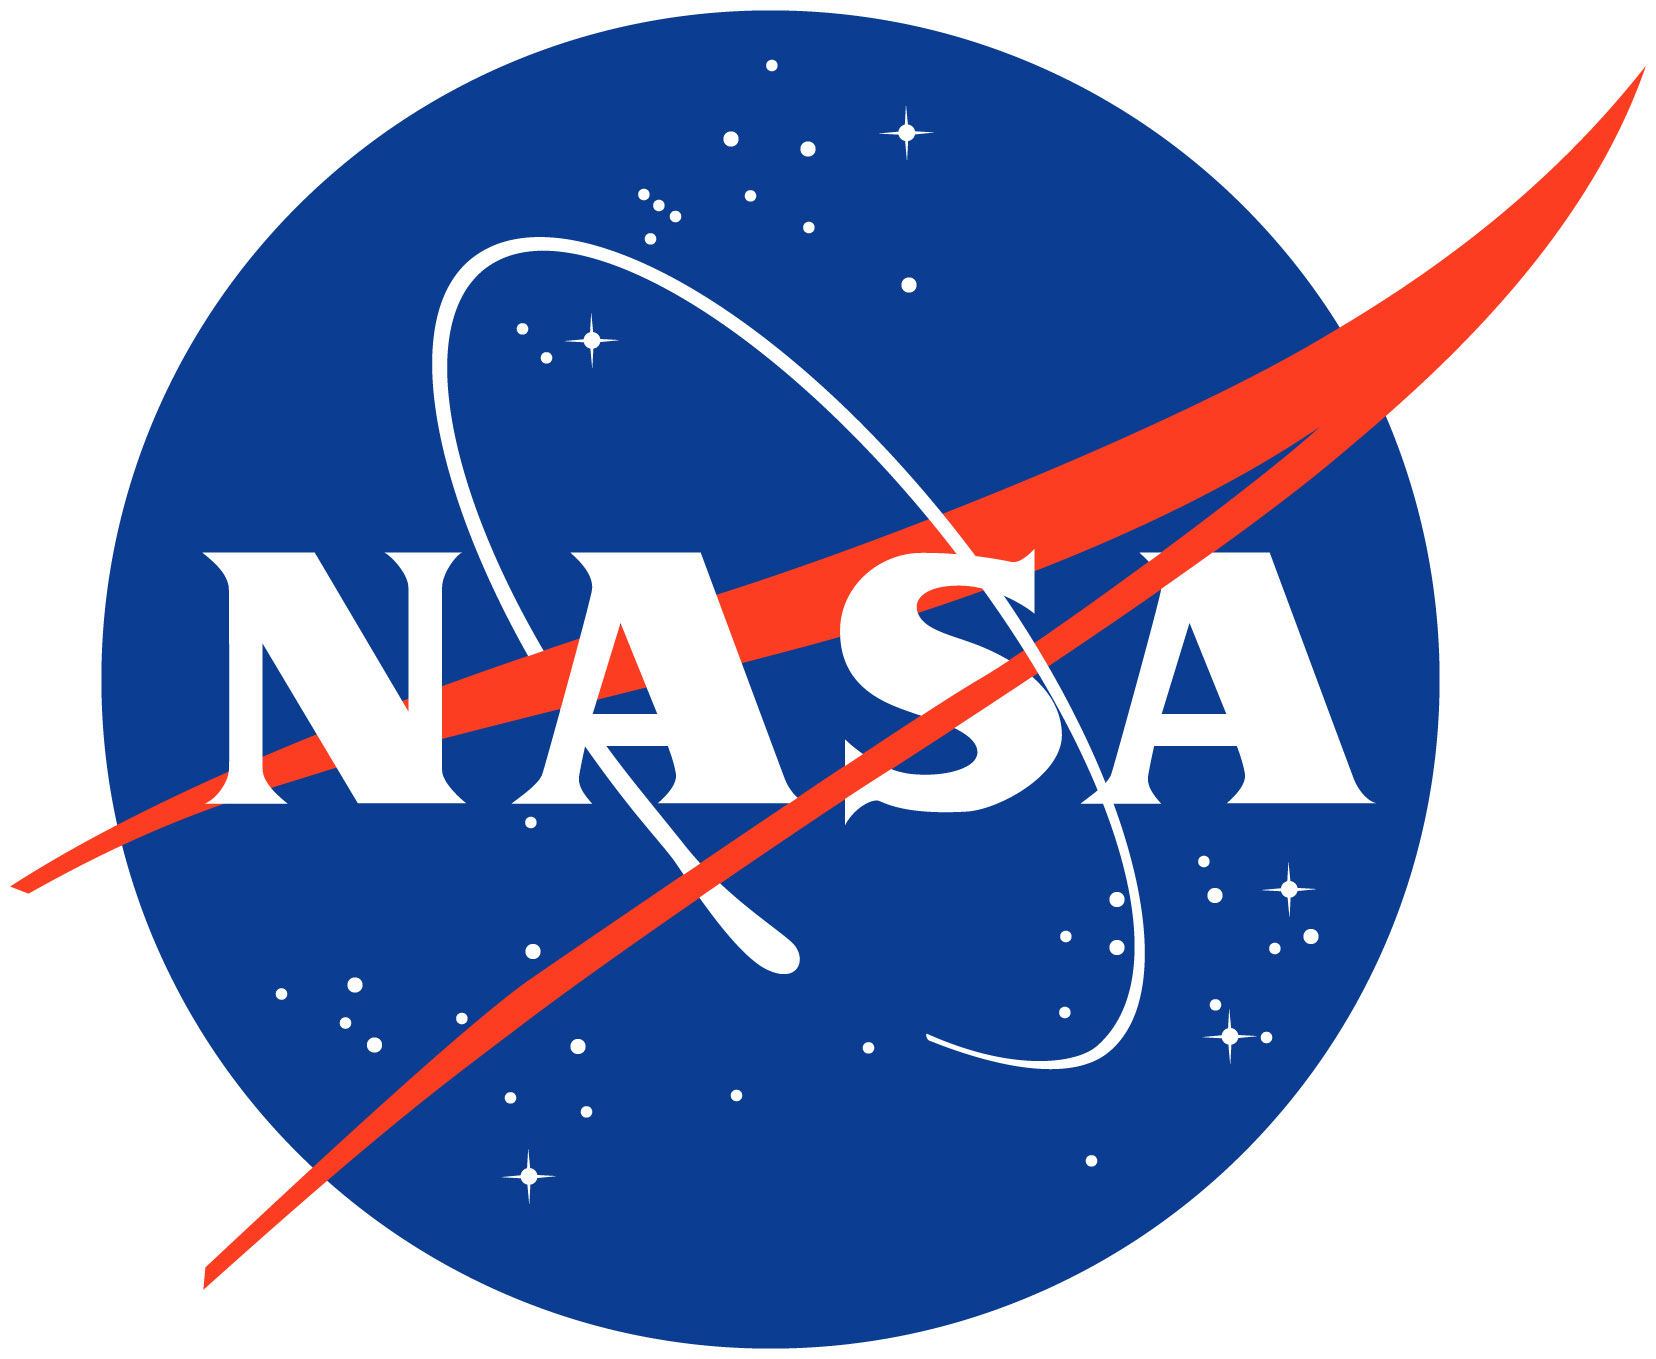 United States of America National Aeronautics and Space Administration